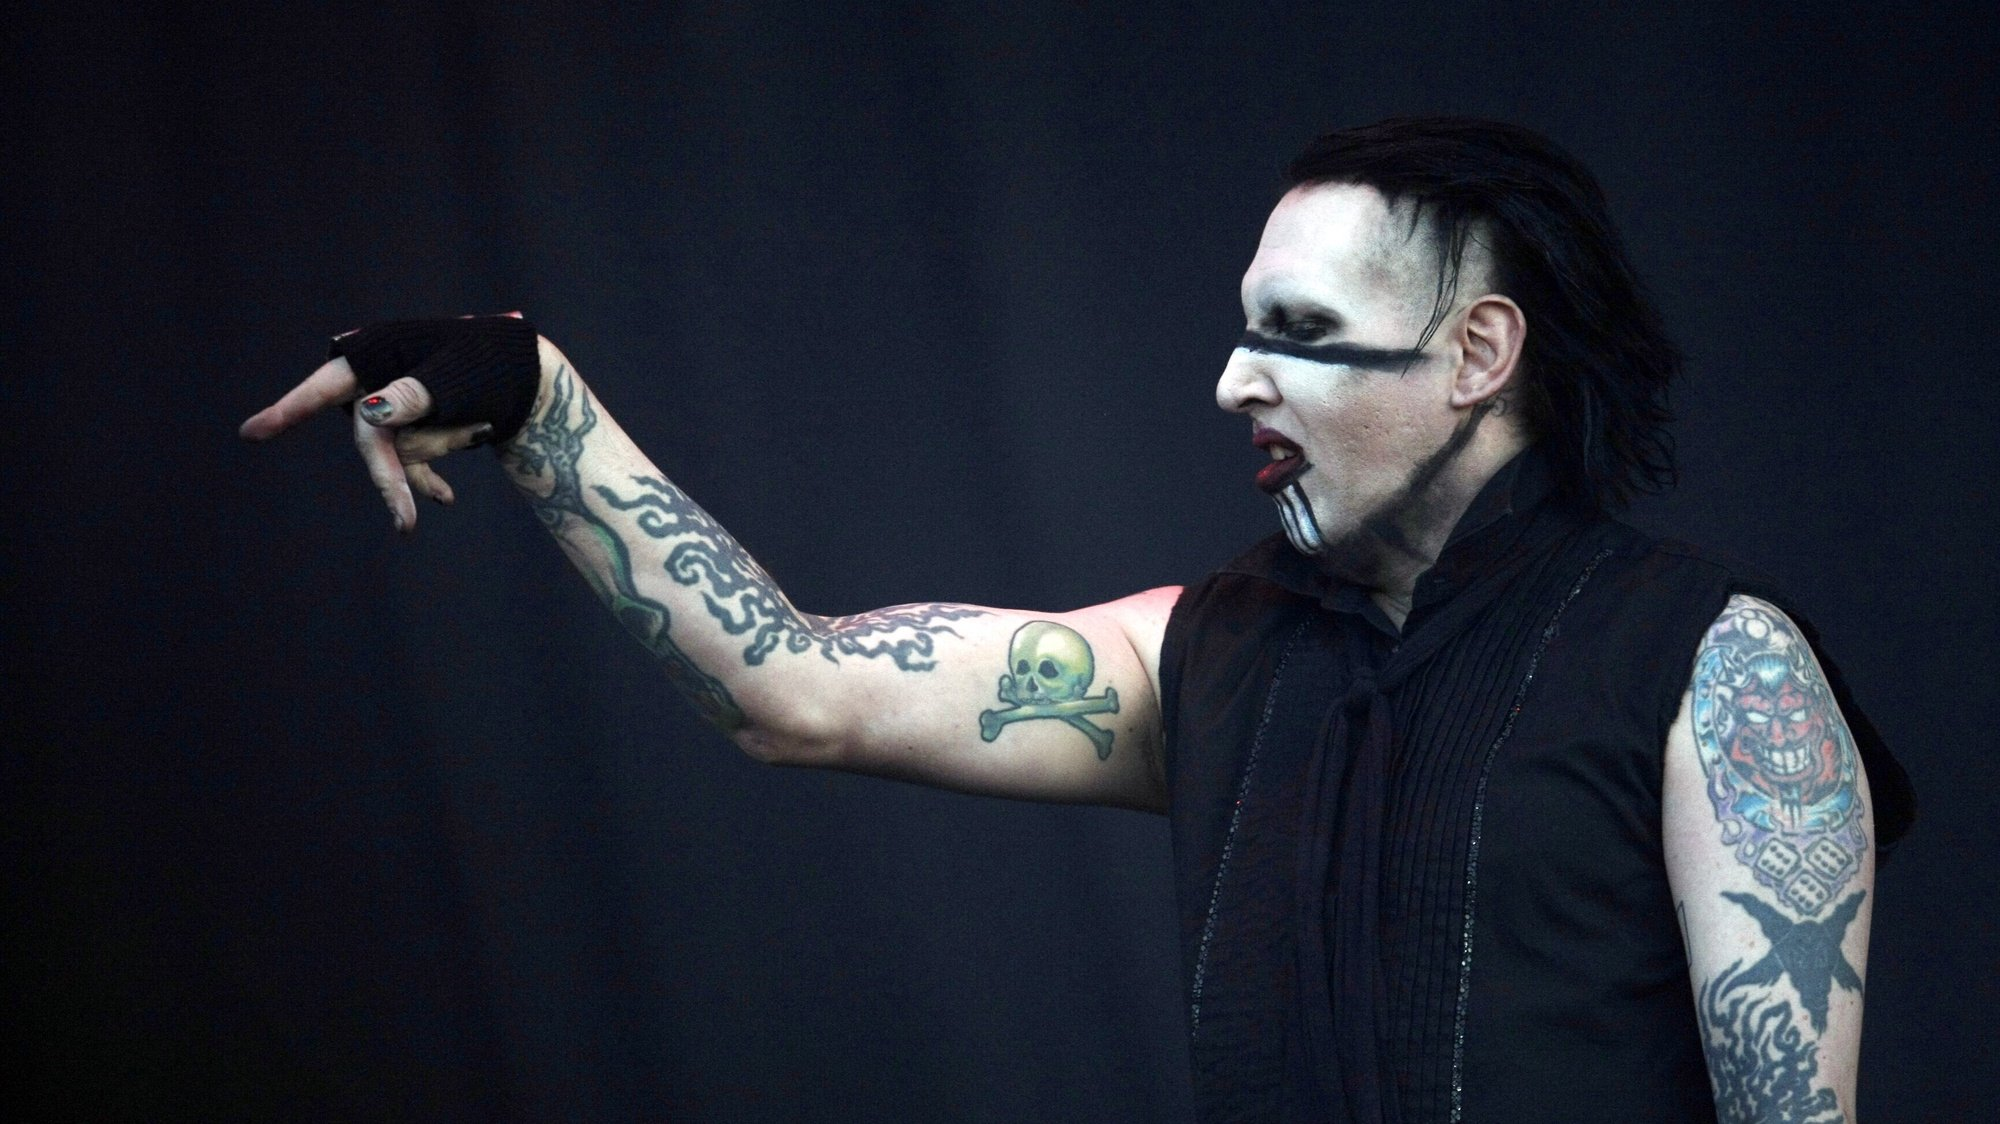 epa08984547 (FILE) - US singer Marilyn Manson performs  in concert during the Maquinaria Music Festival at the Vizcachas in Santiago, Chile, 10 November 2012 (reissued 03 February 2021). US actress Evan Rachel Wood has accused Manson of abuse, a claim the artist denied as 'horrible distortions of reality'.  EPA/MARIO RUIZ *** Local Caption *** 50591733